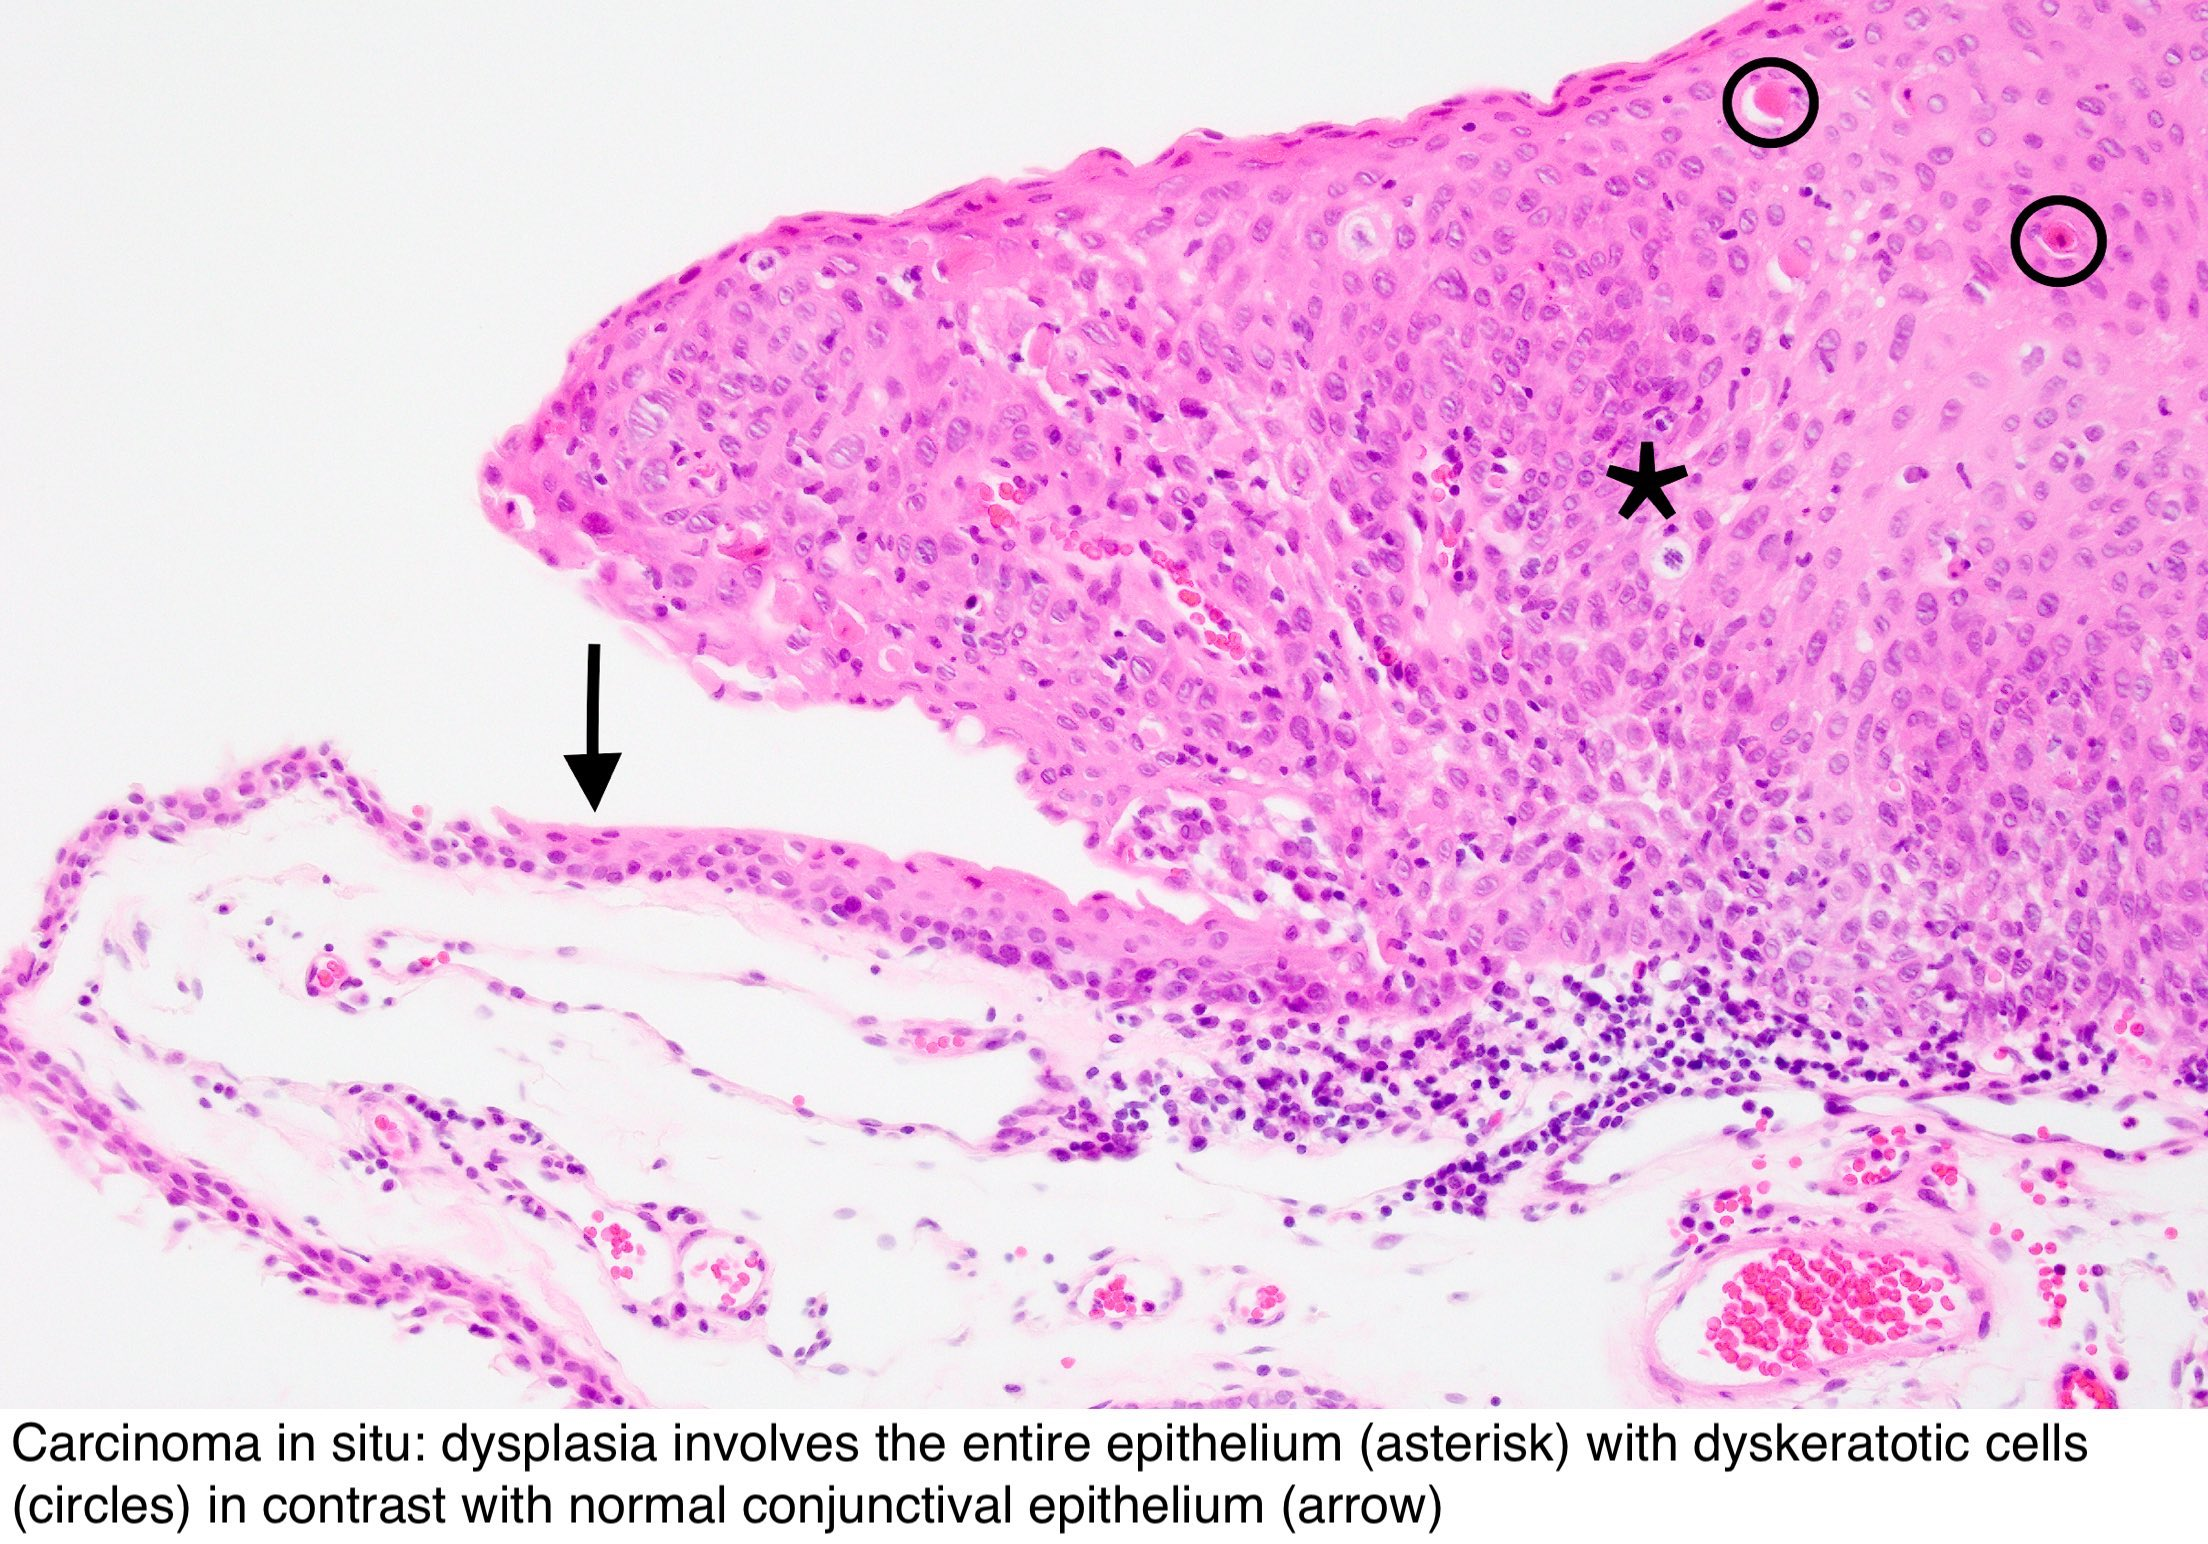 Intraductal papilloma histopathology Hpv cancer of the tonsil